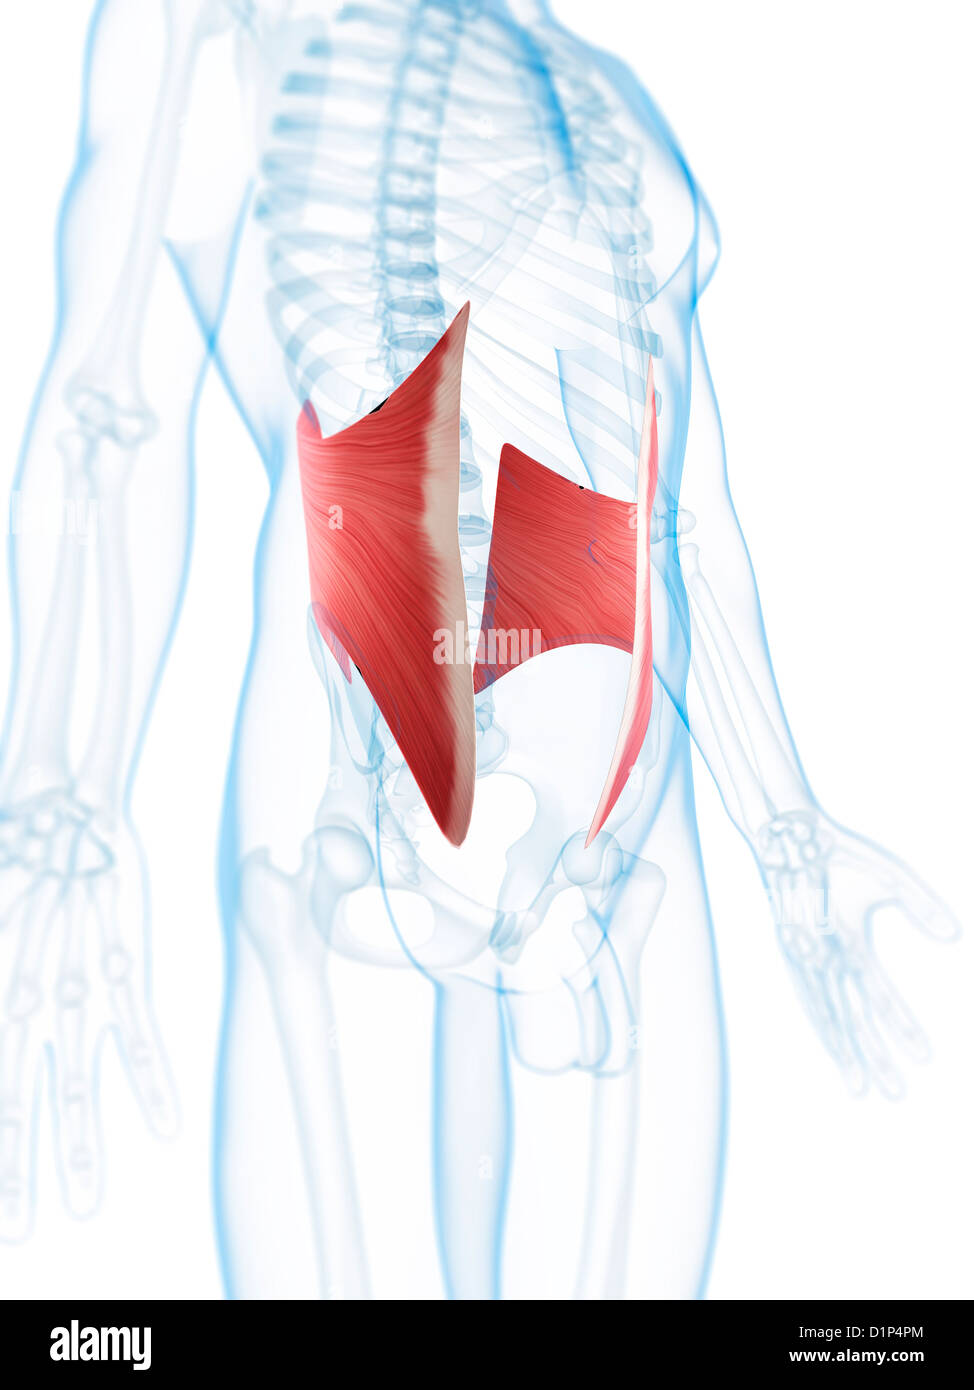 Abdominal Muscles Stock Photos Abdominal Muscles Stock Images Alamy